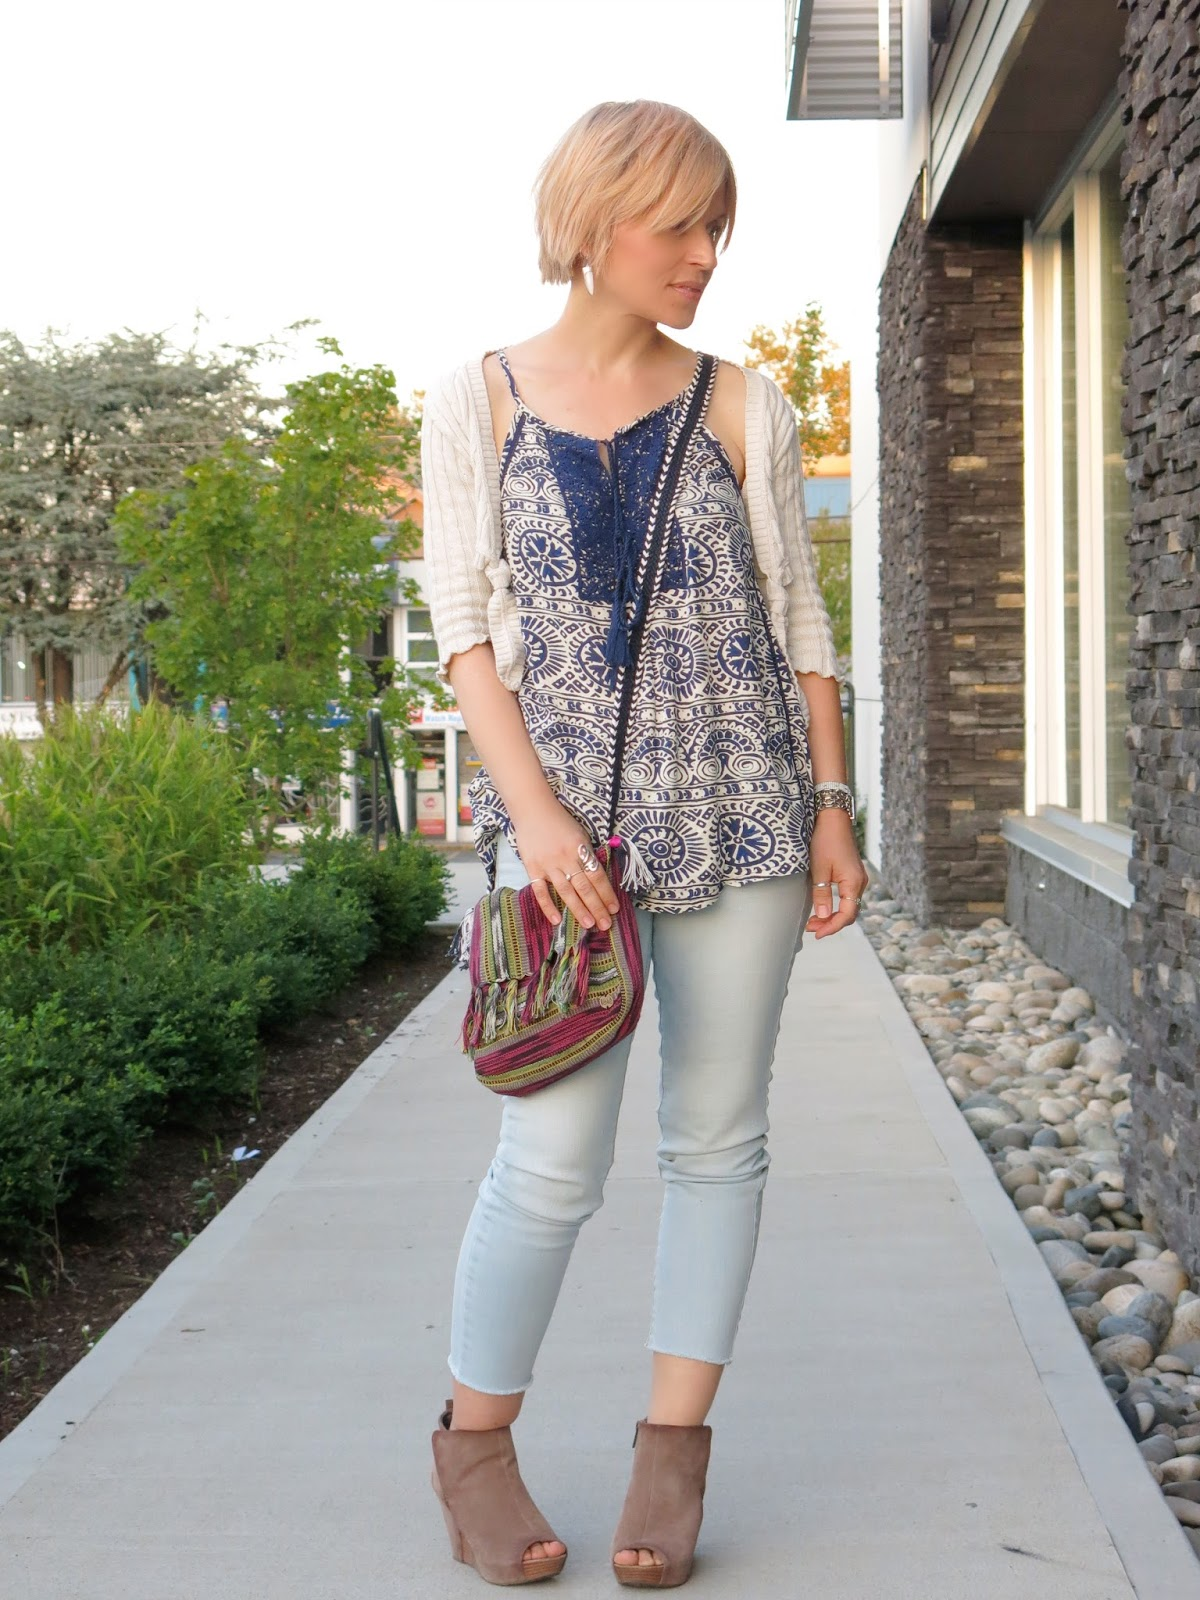 styling bleached skinny jeans with a peasant-style tank top and cable-knit shrug